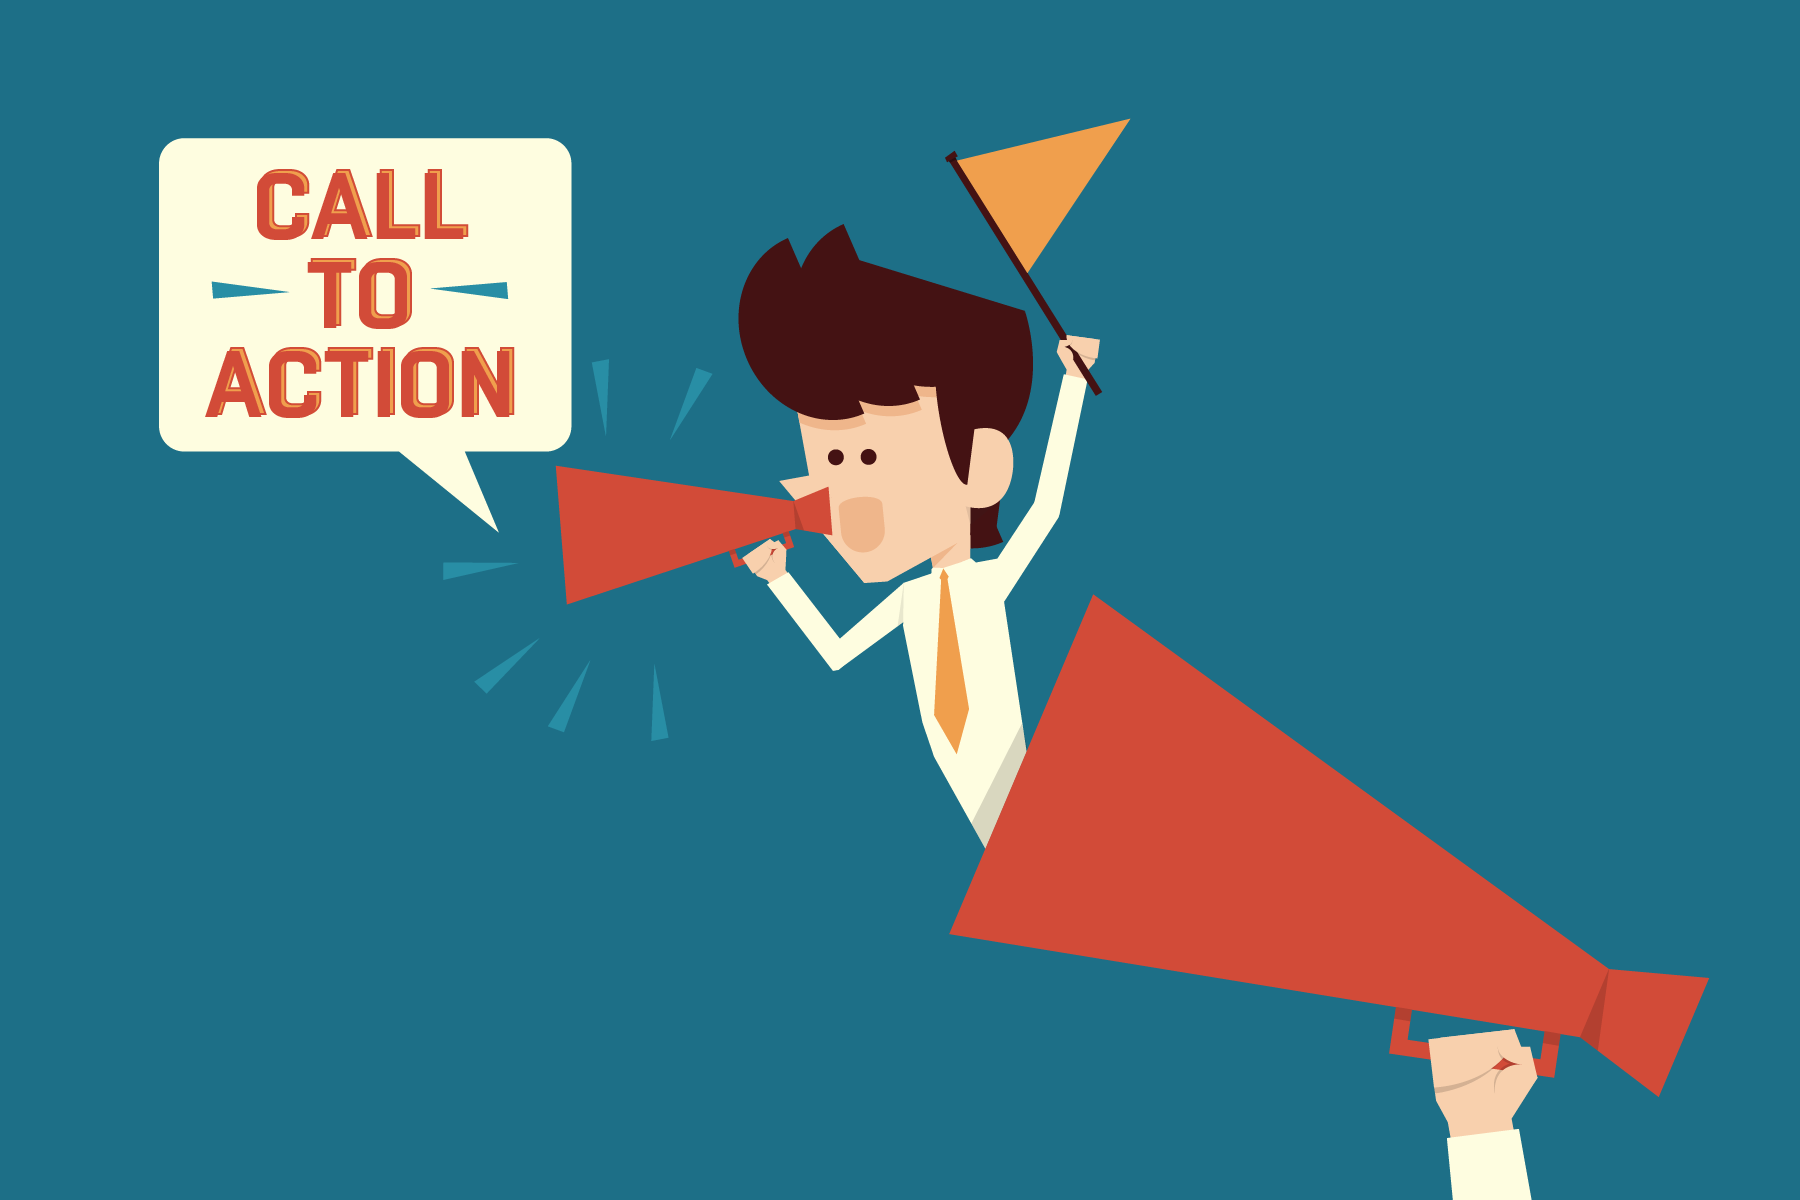 Tuesday Tip Of The Week #142 – A Call to Action